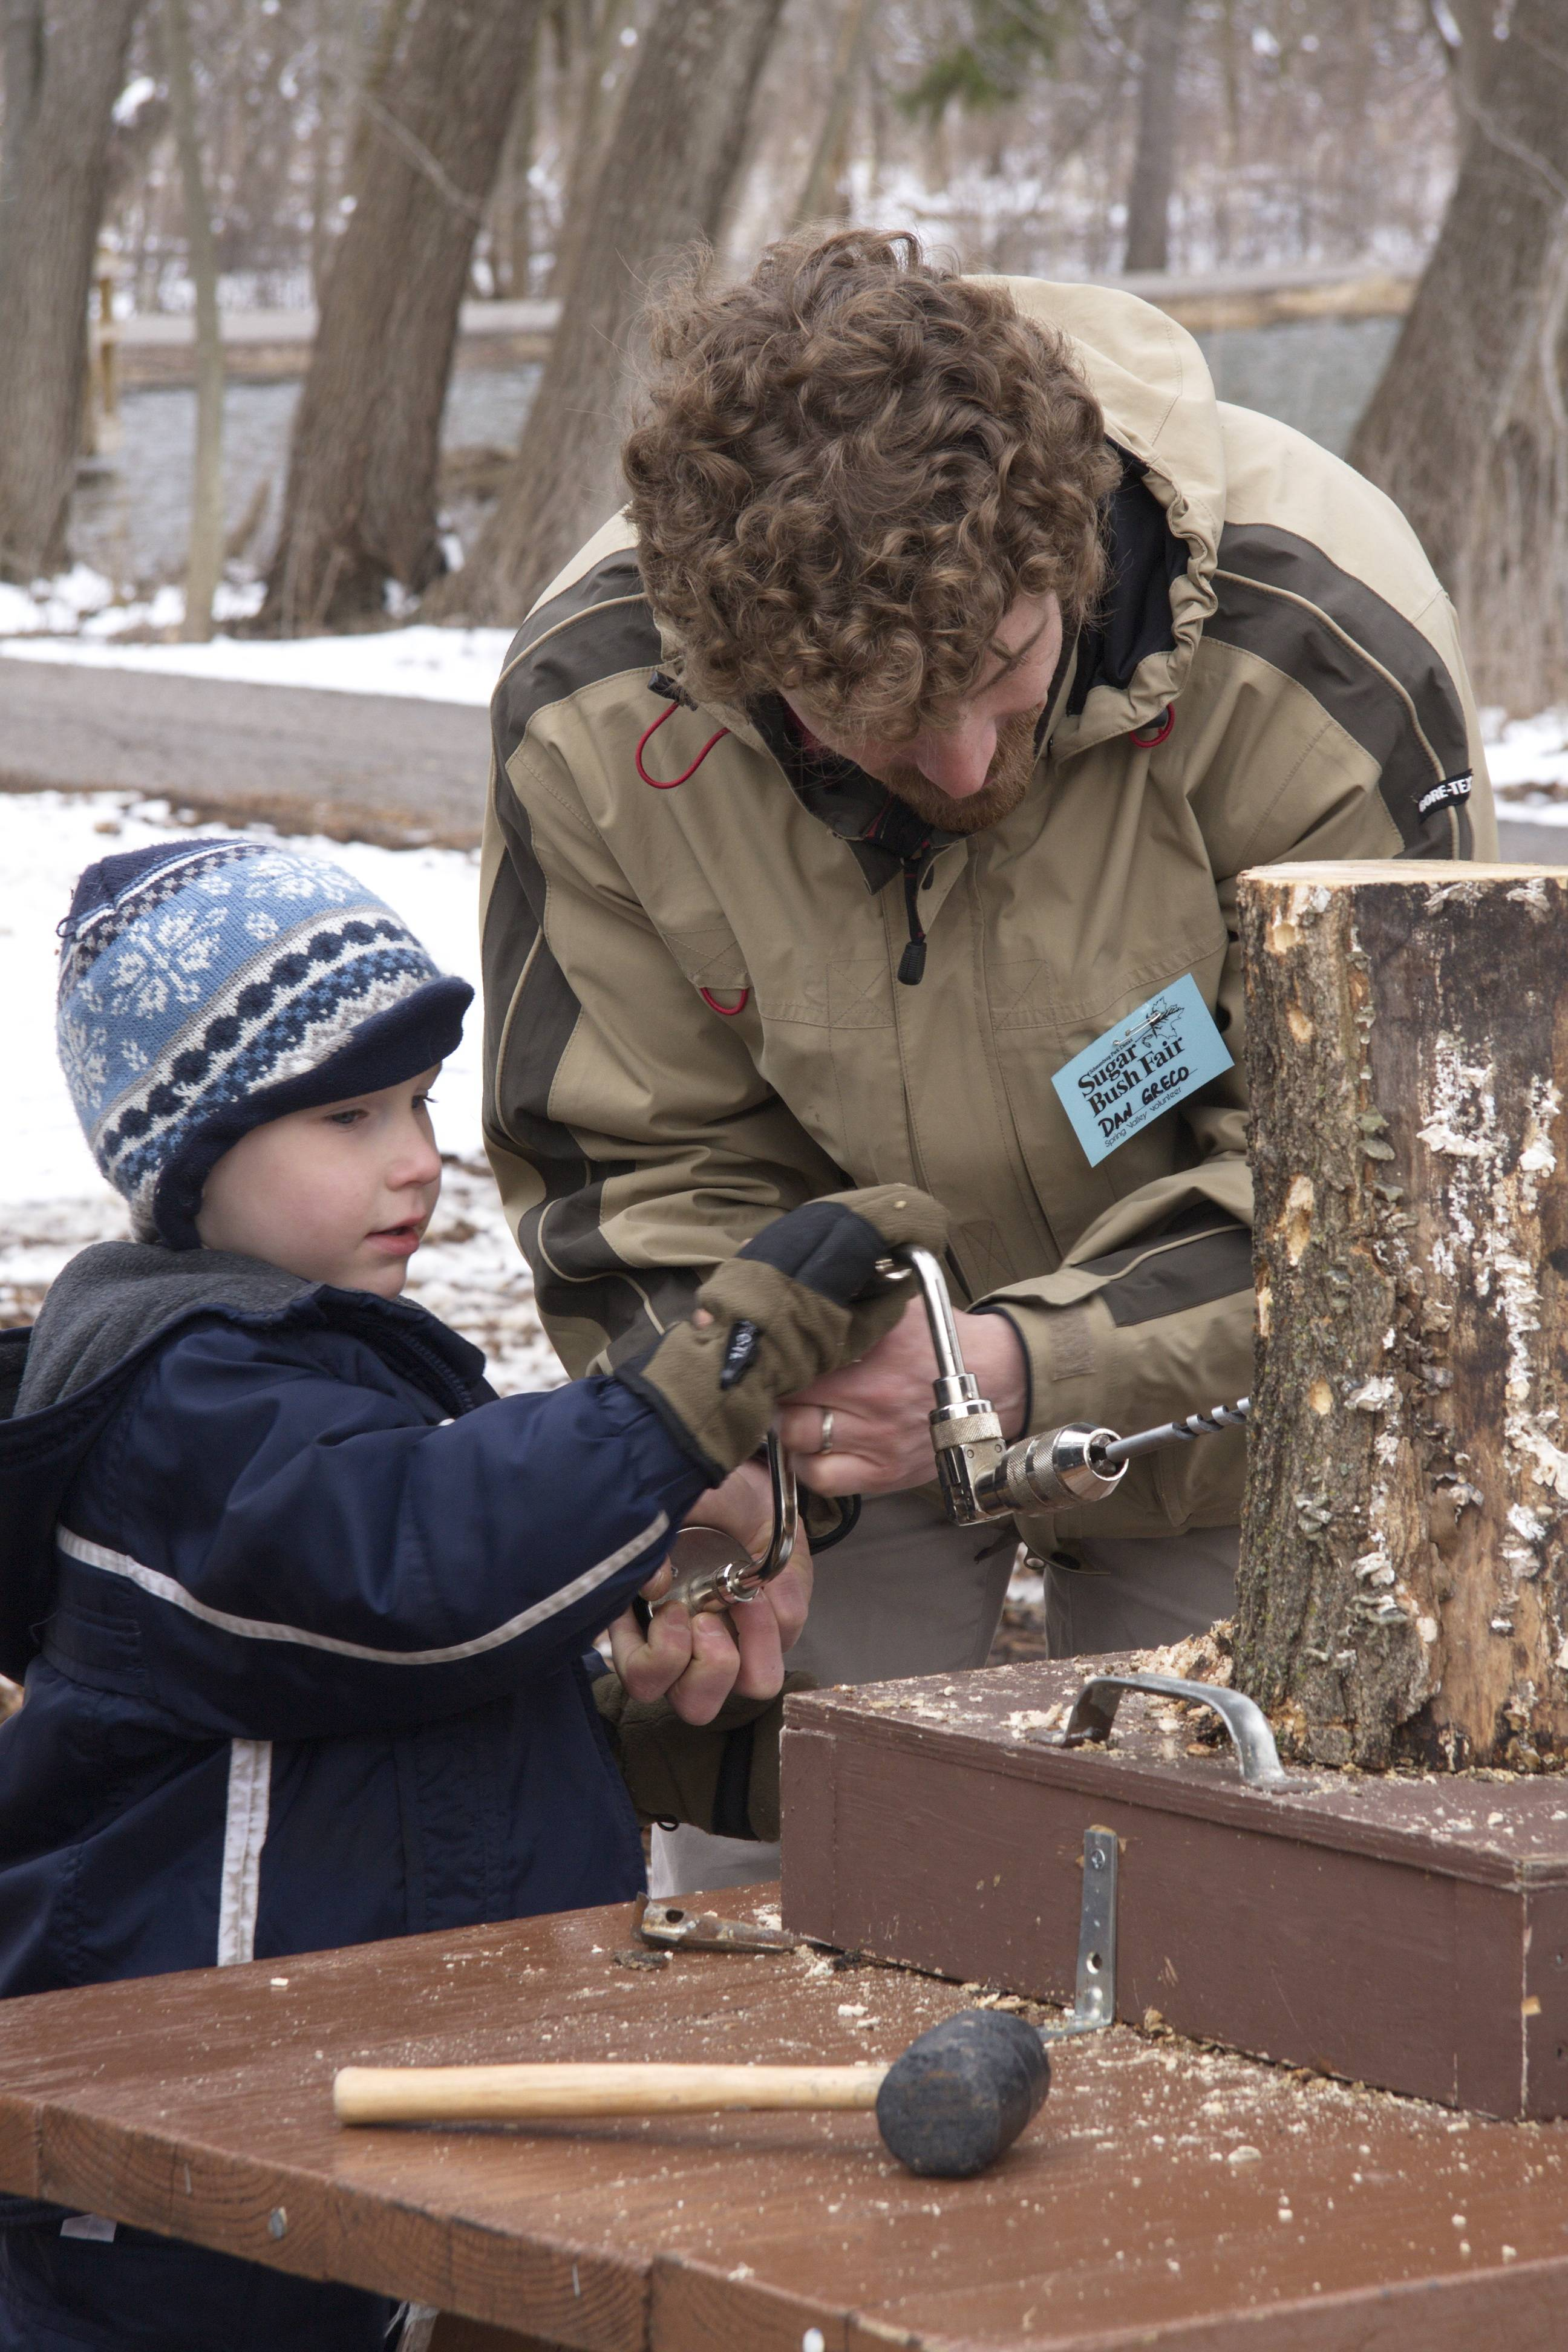 A child and adult work on tapping maple syrup at Spring Valley.